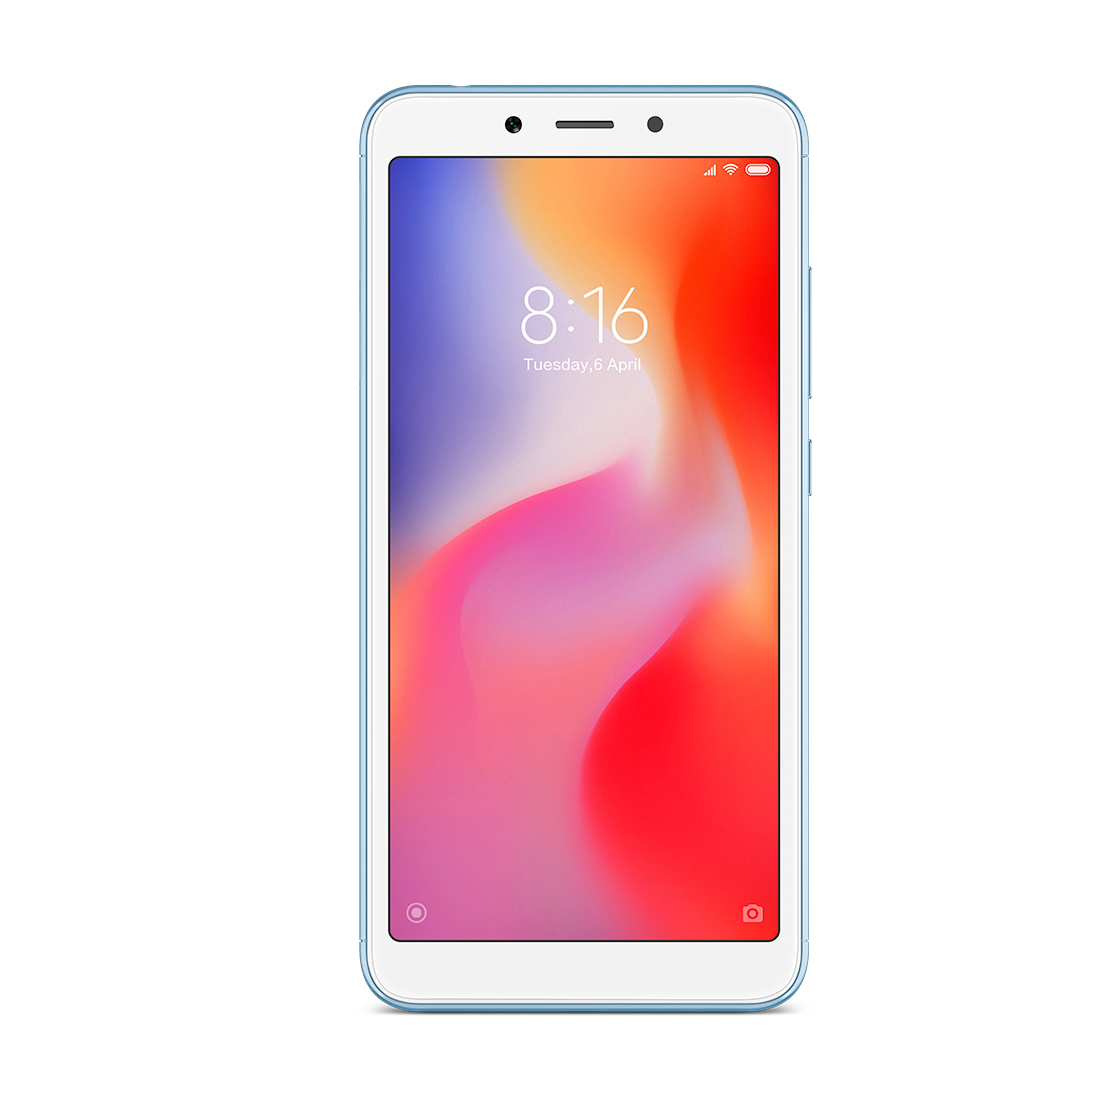 Мобильный телефон Xiaomi Redmi 6A 16GB Синий